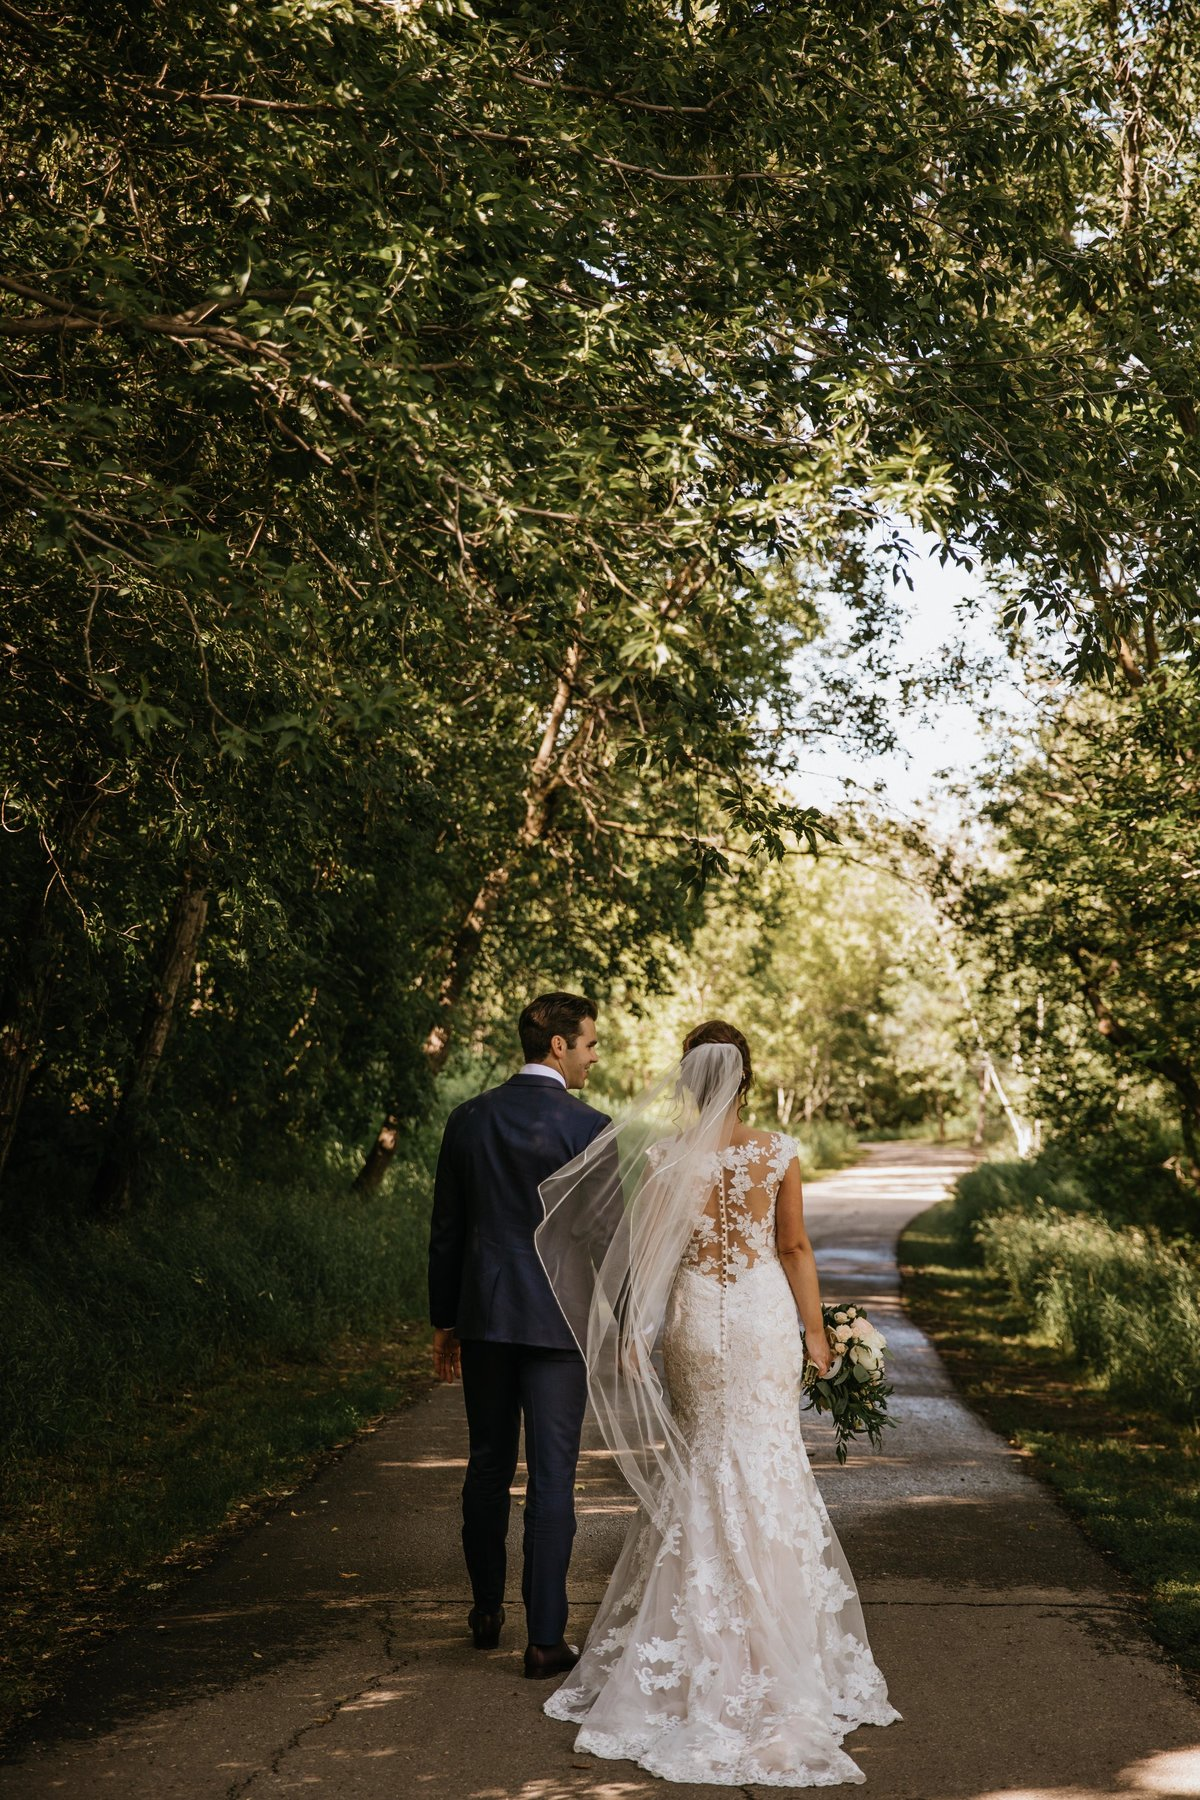 Kolisniak Wedding 2018 -672